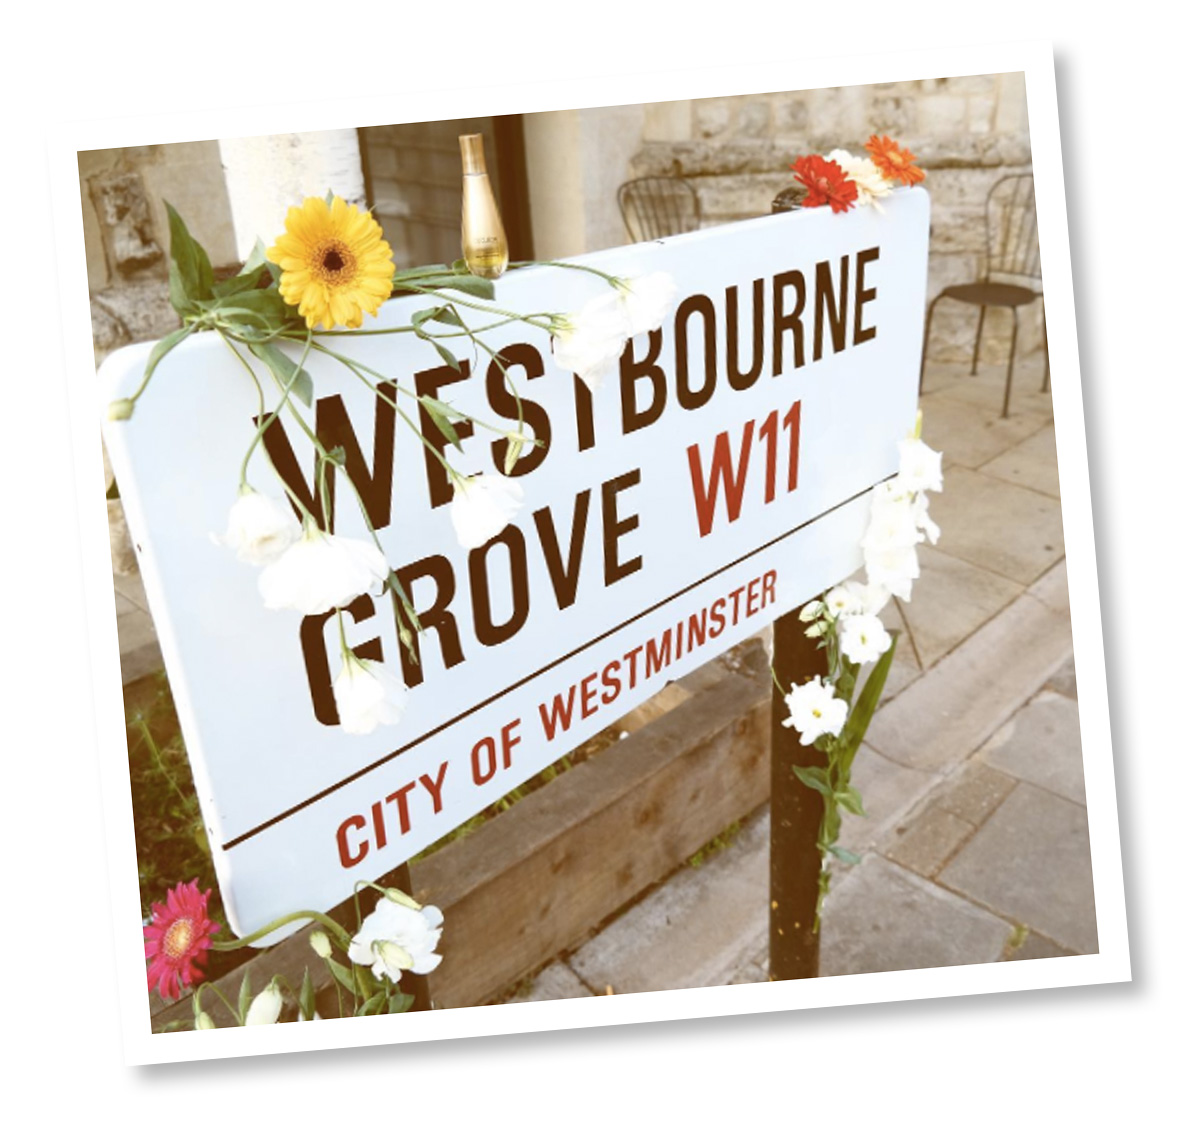 Westbourne Grove Sign